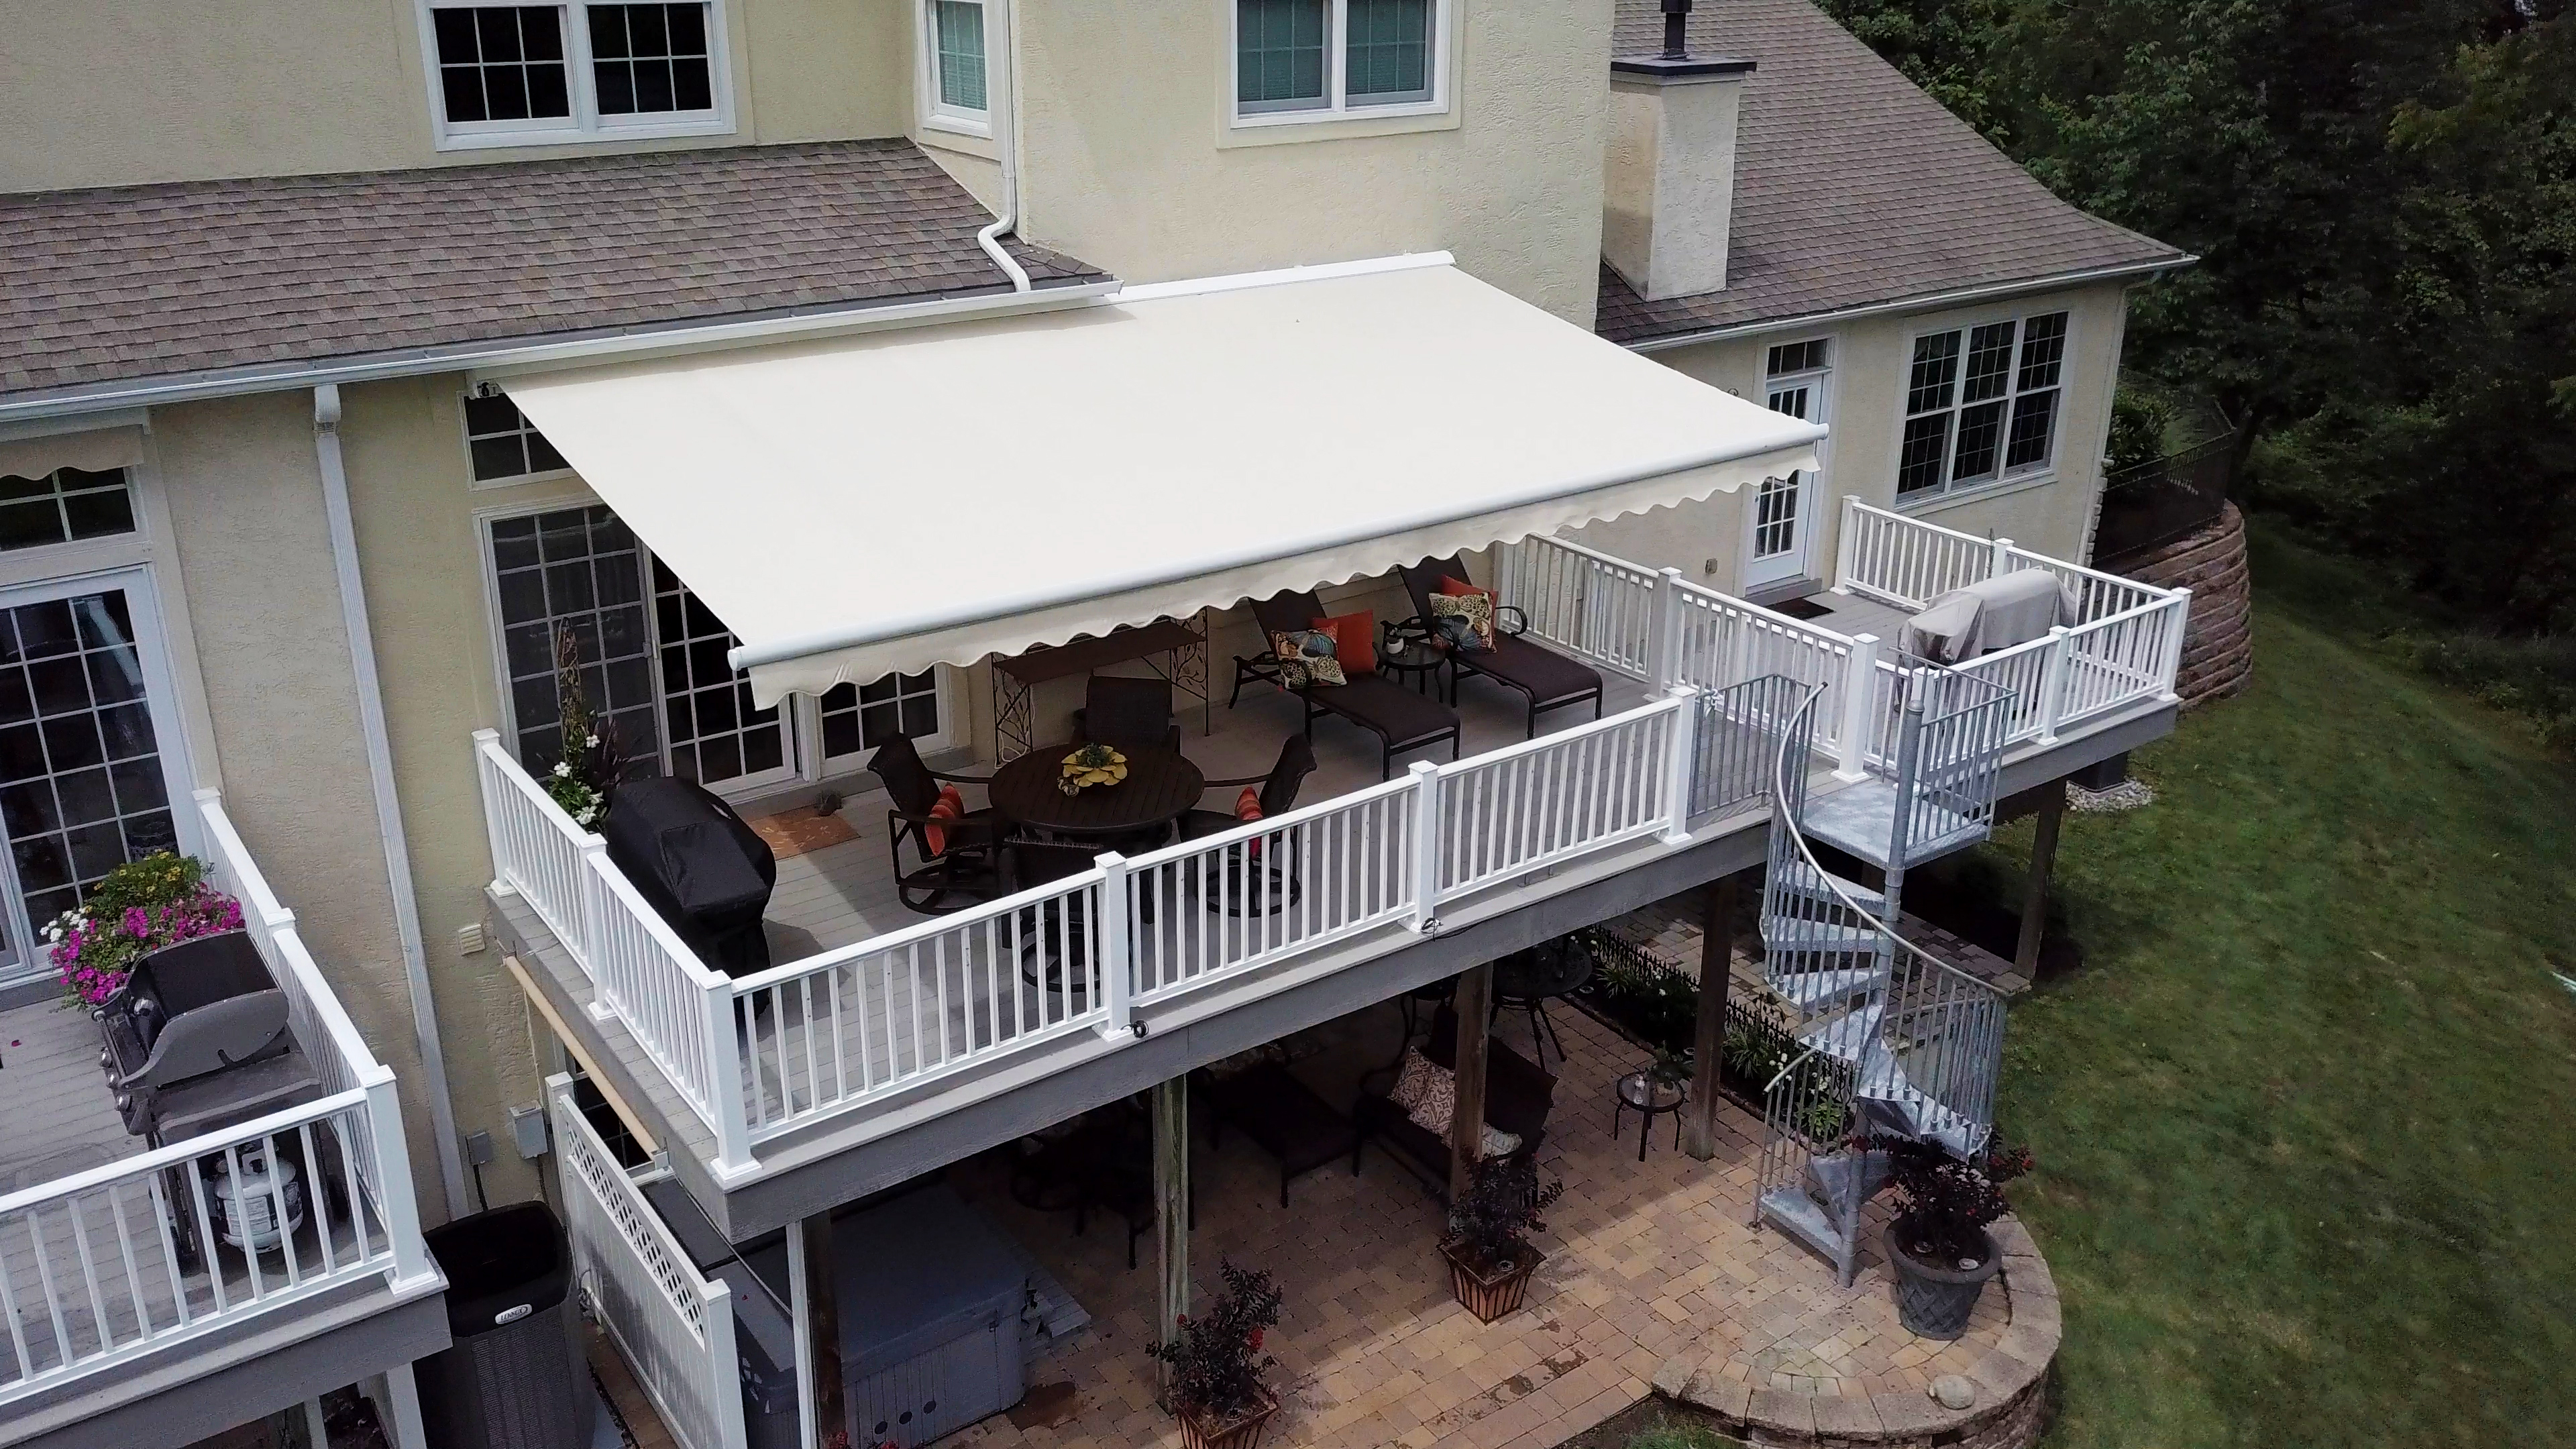 light colored residential awning for cool temperatures